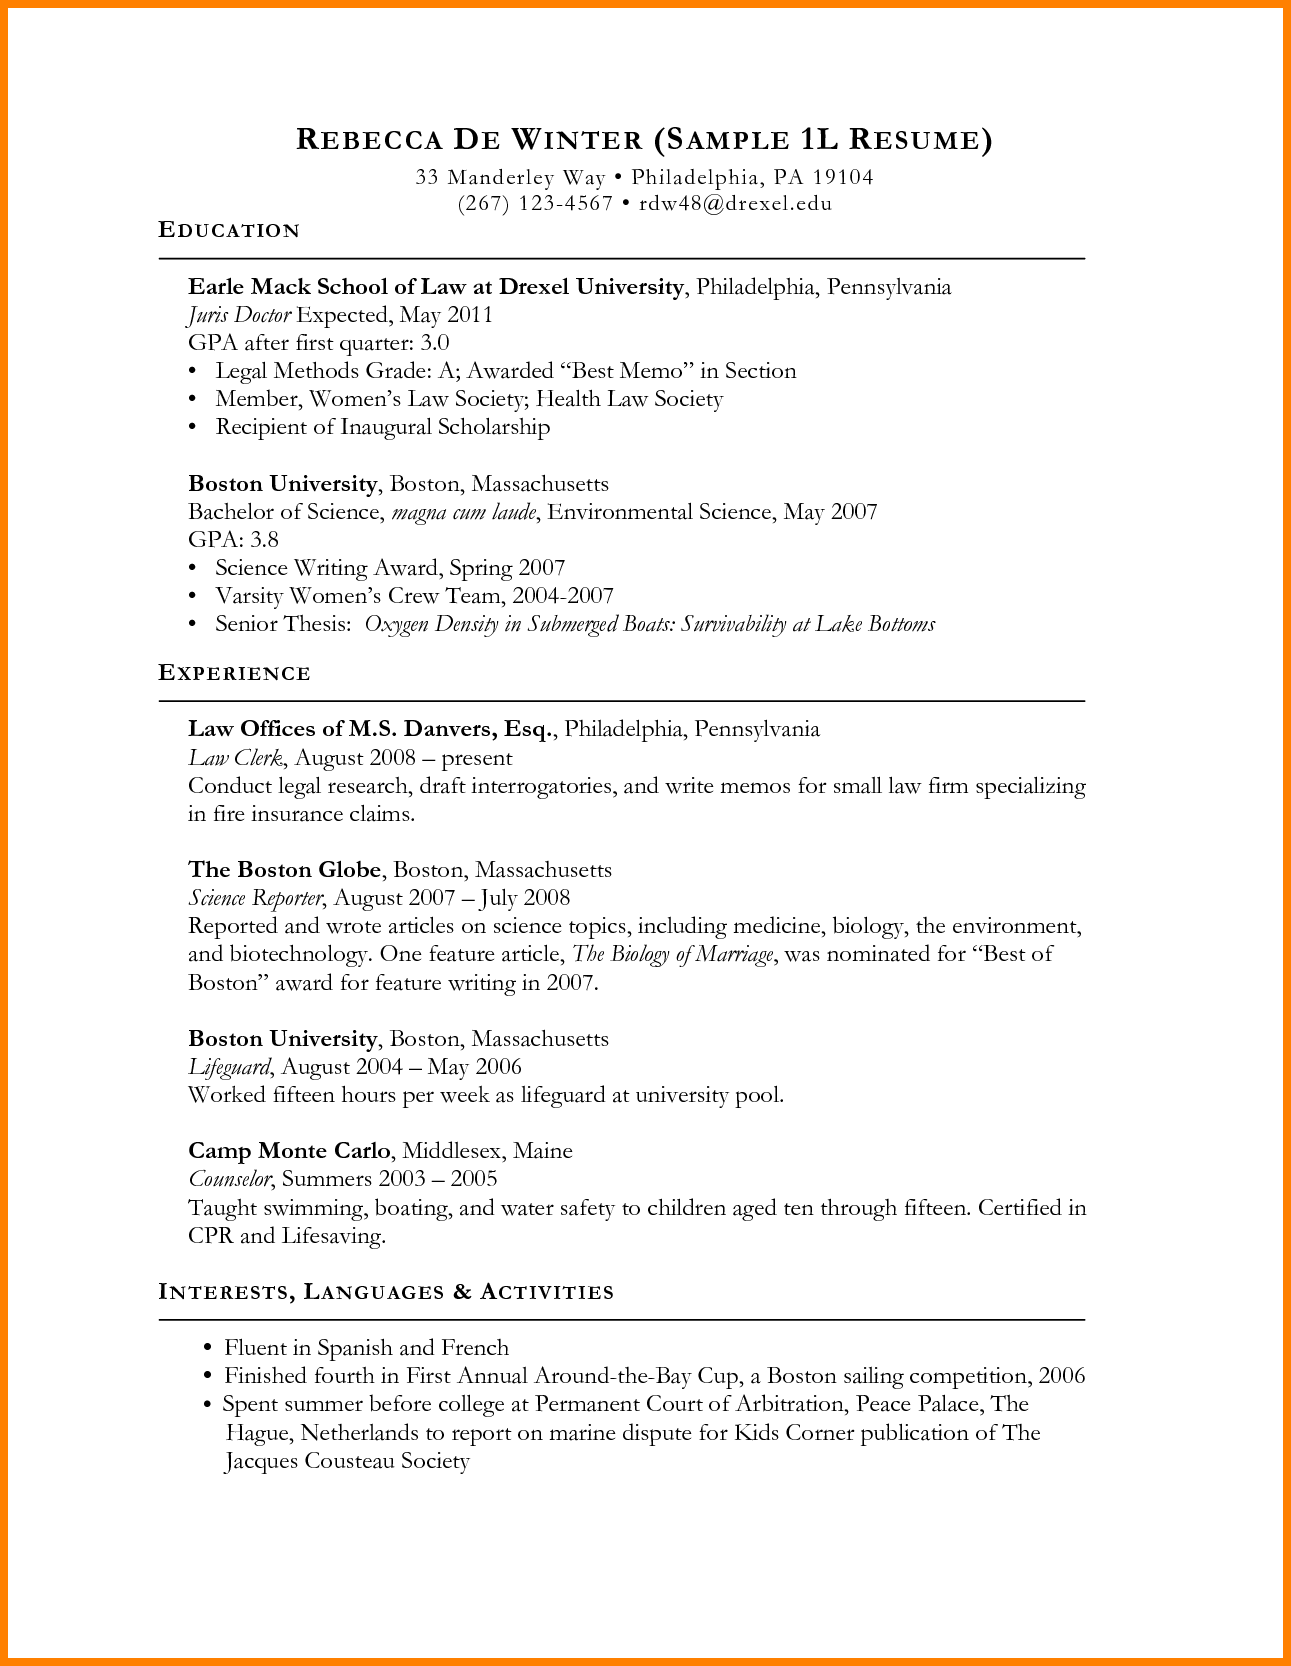 Personal Statement Examples For Resume 10 Resume For Law School Application  Resume Law School Resume .  Law School Application Resume